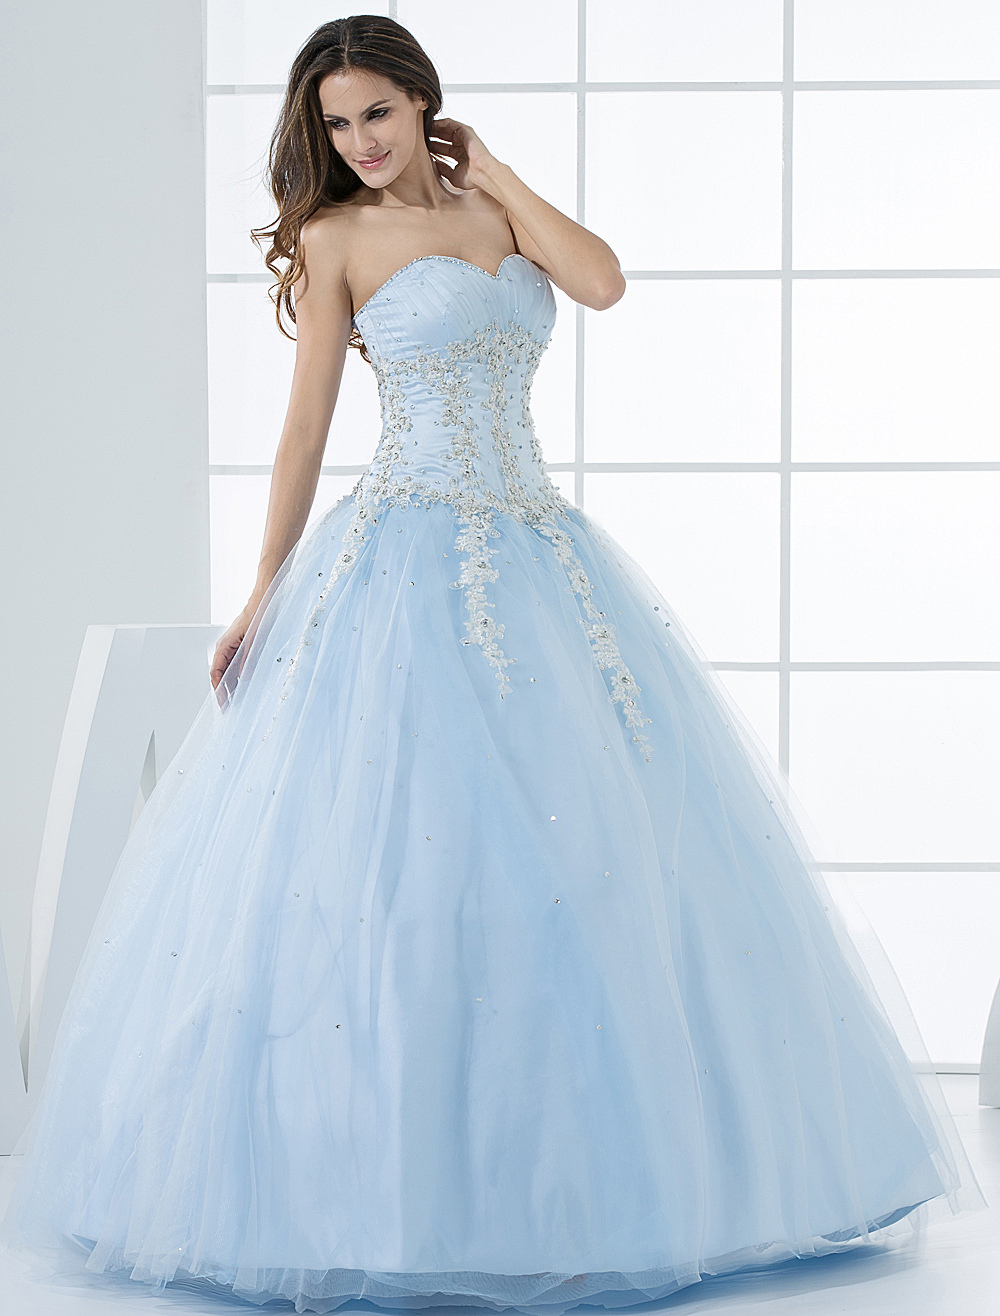 Princess Wedding Dresses Pastel Blue Quinceanera Dress Lace Applique Sweetheart Strapless Beading Tulle Floor Length Bridal Gown